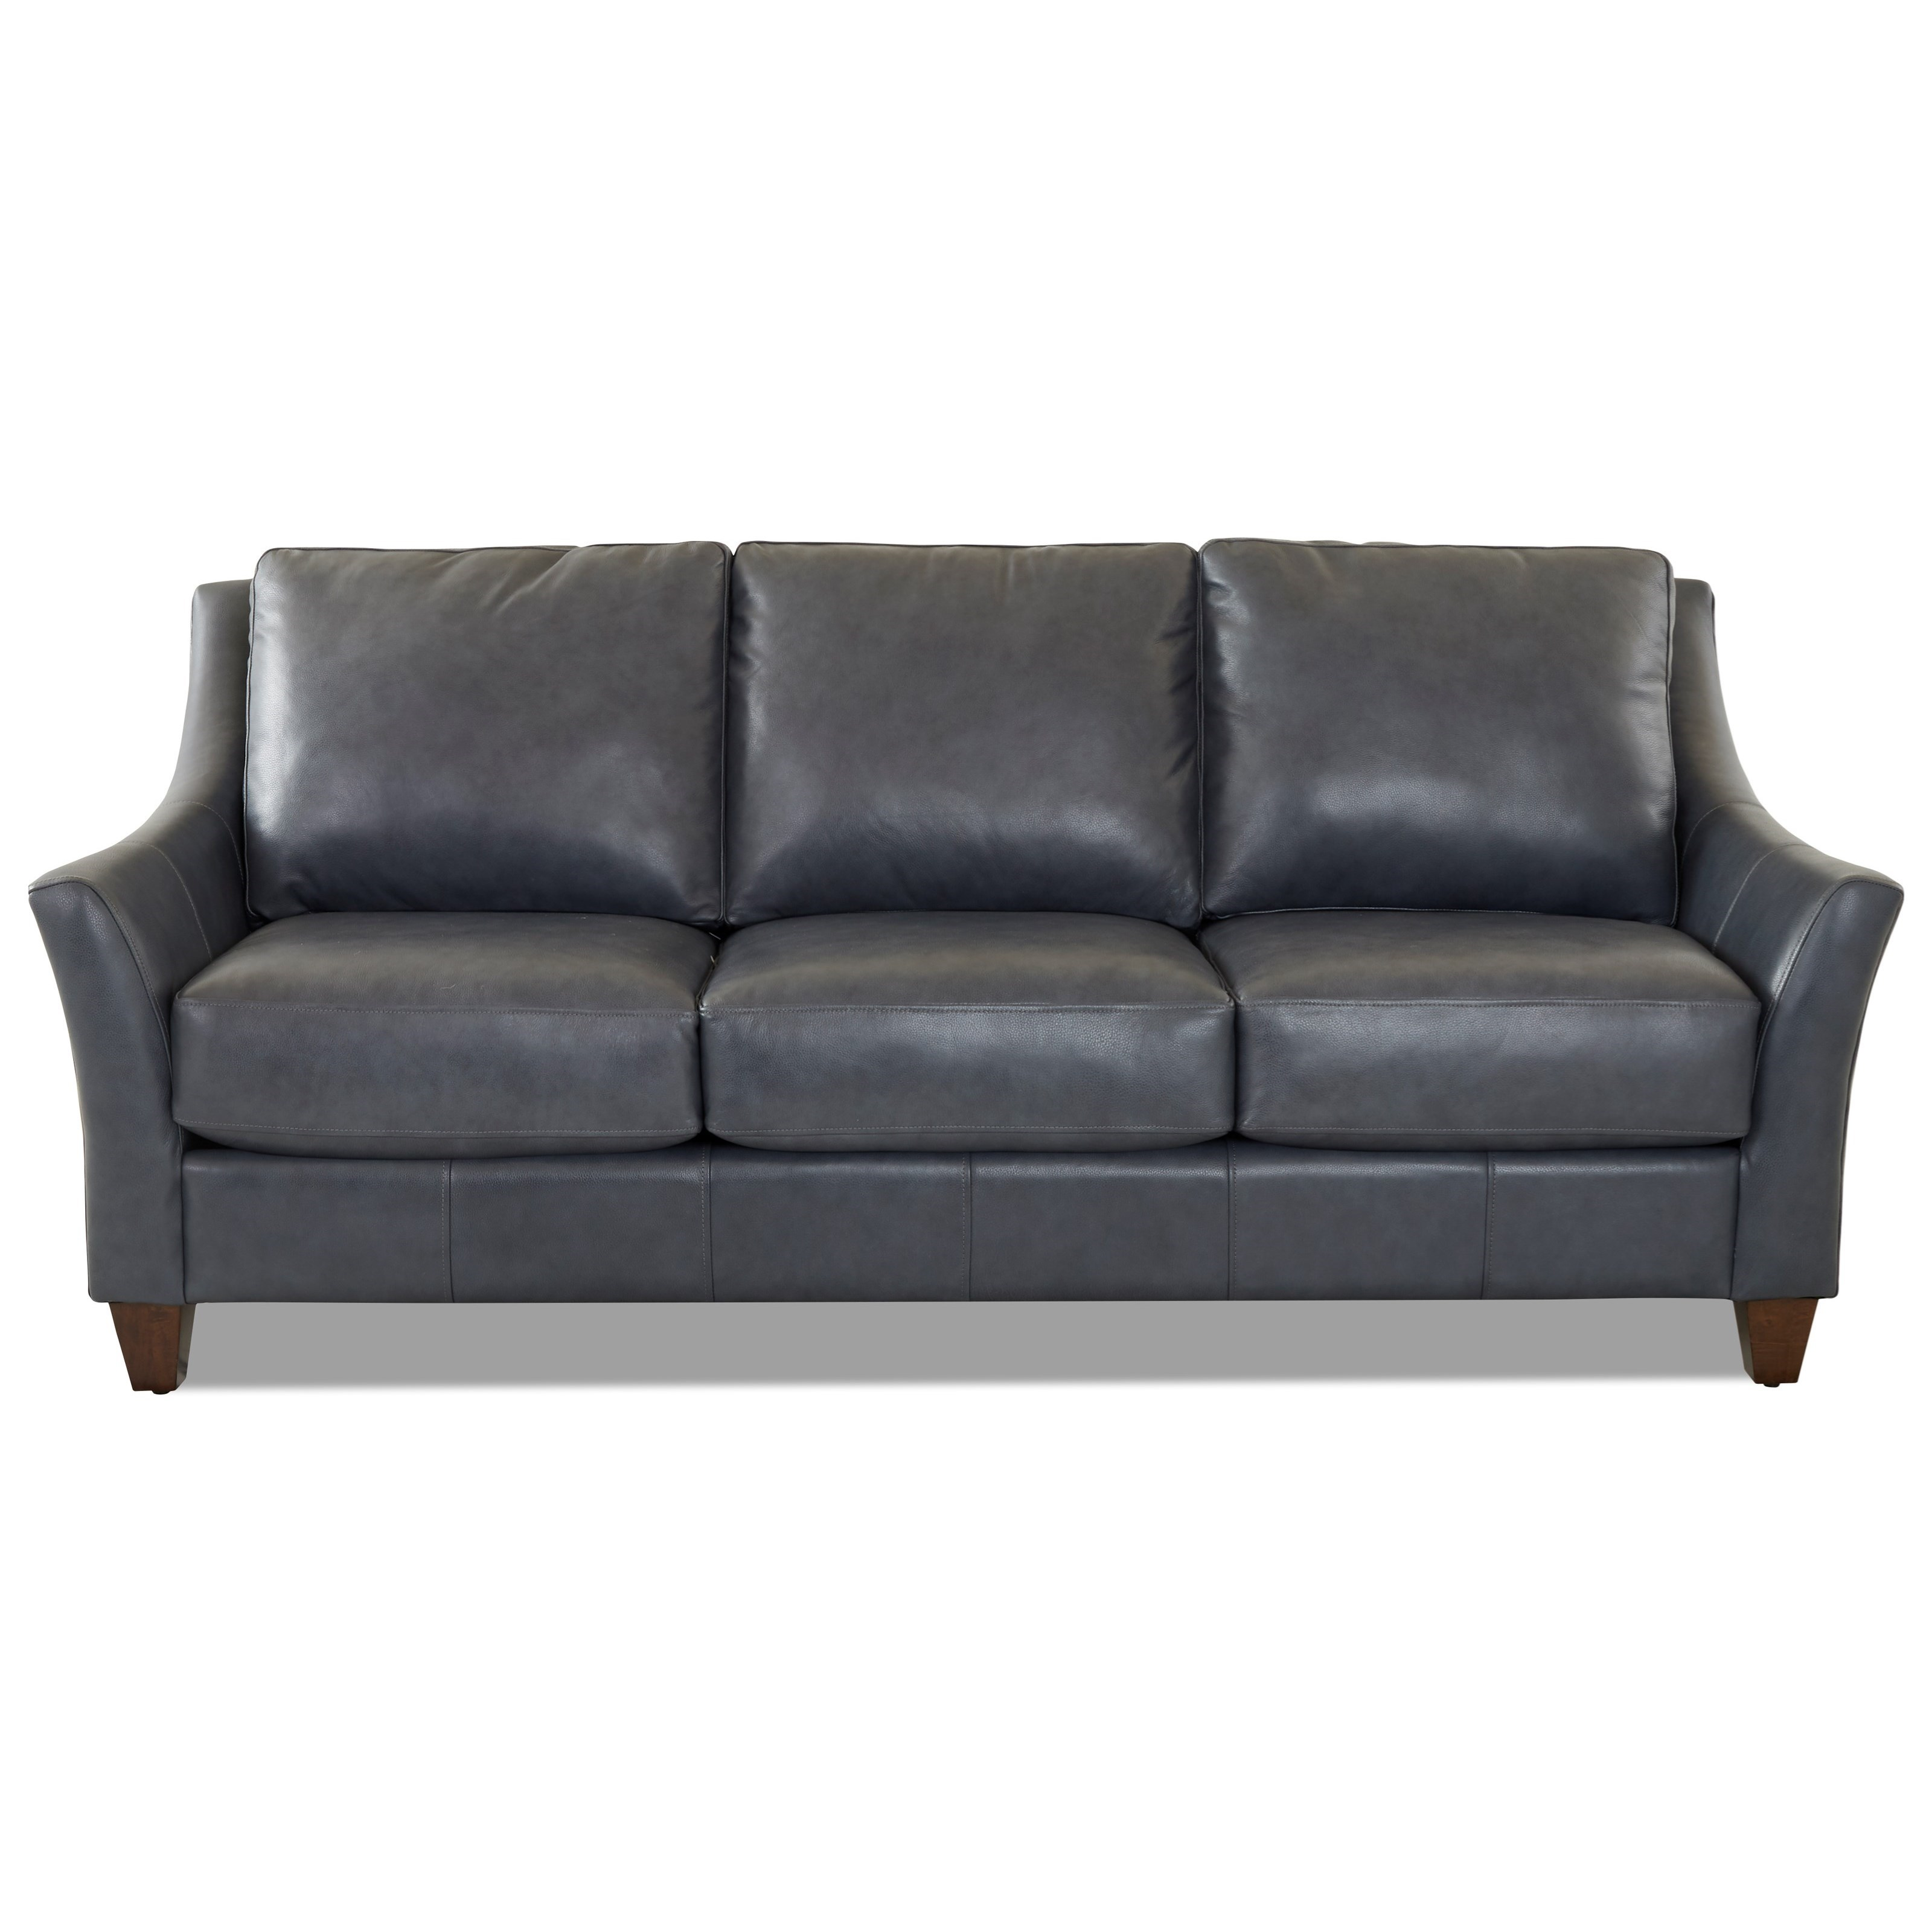 Joanna Sofa by Klaussner at Northeast Factory Direct